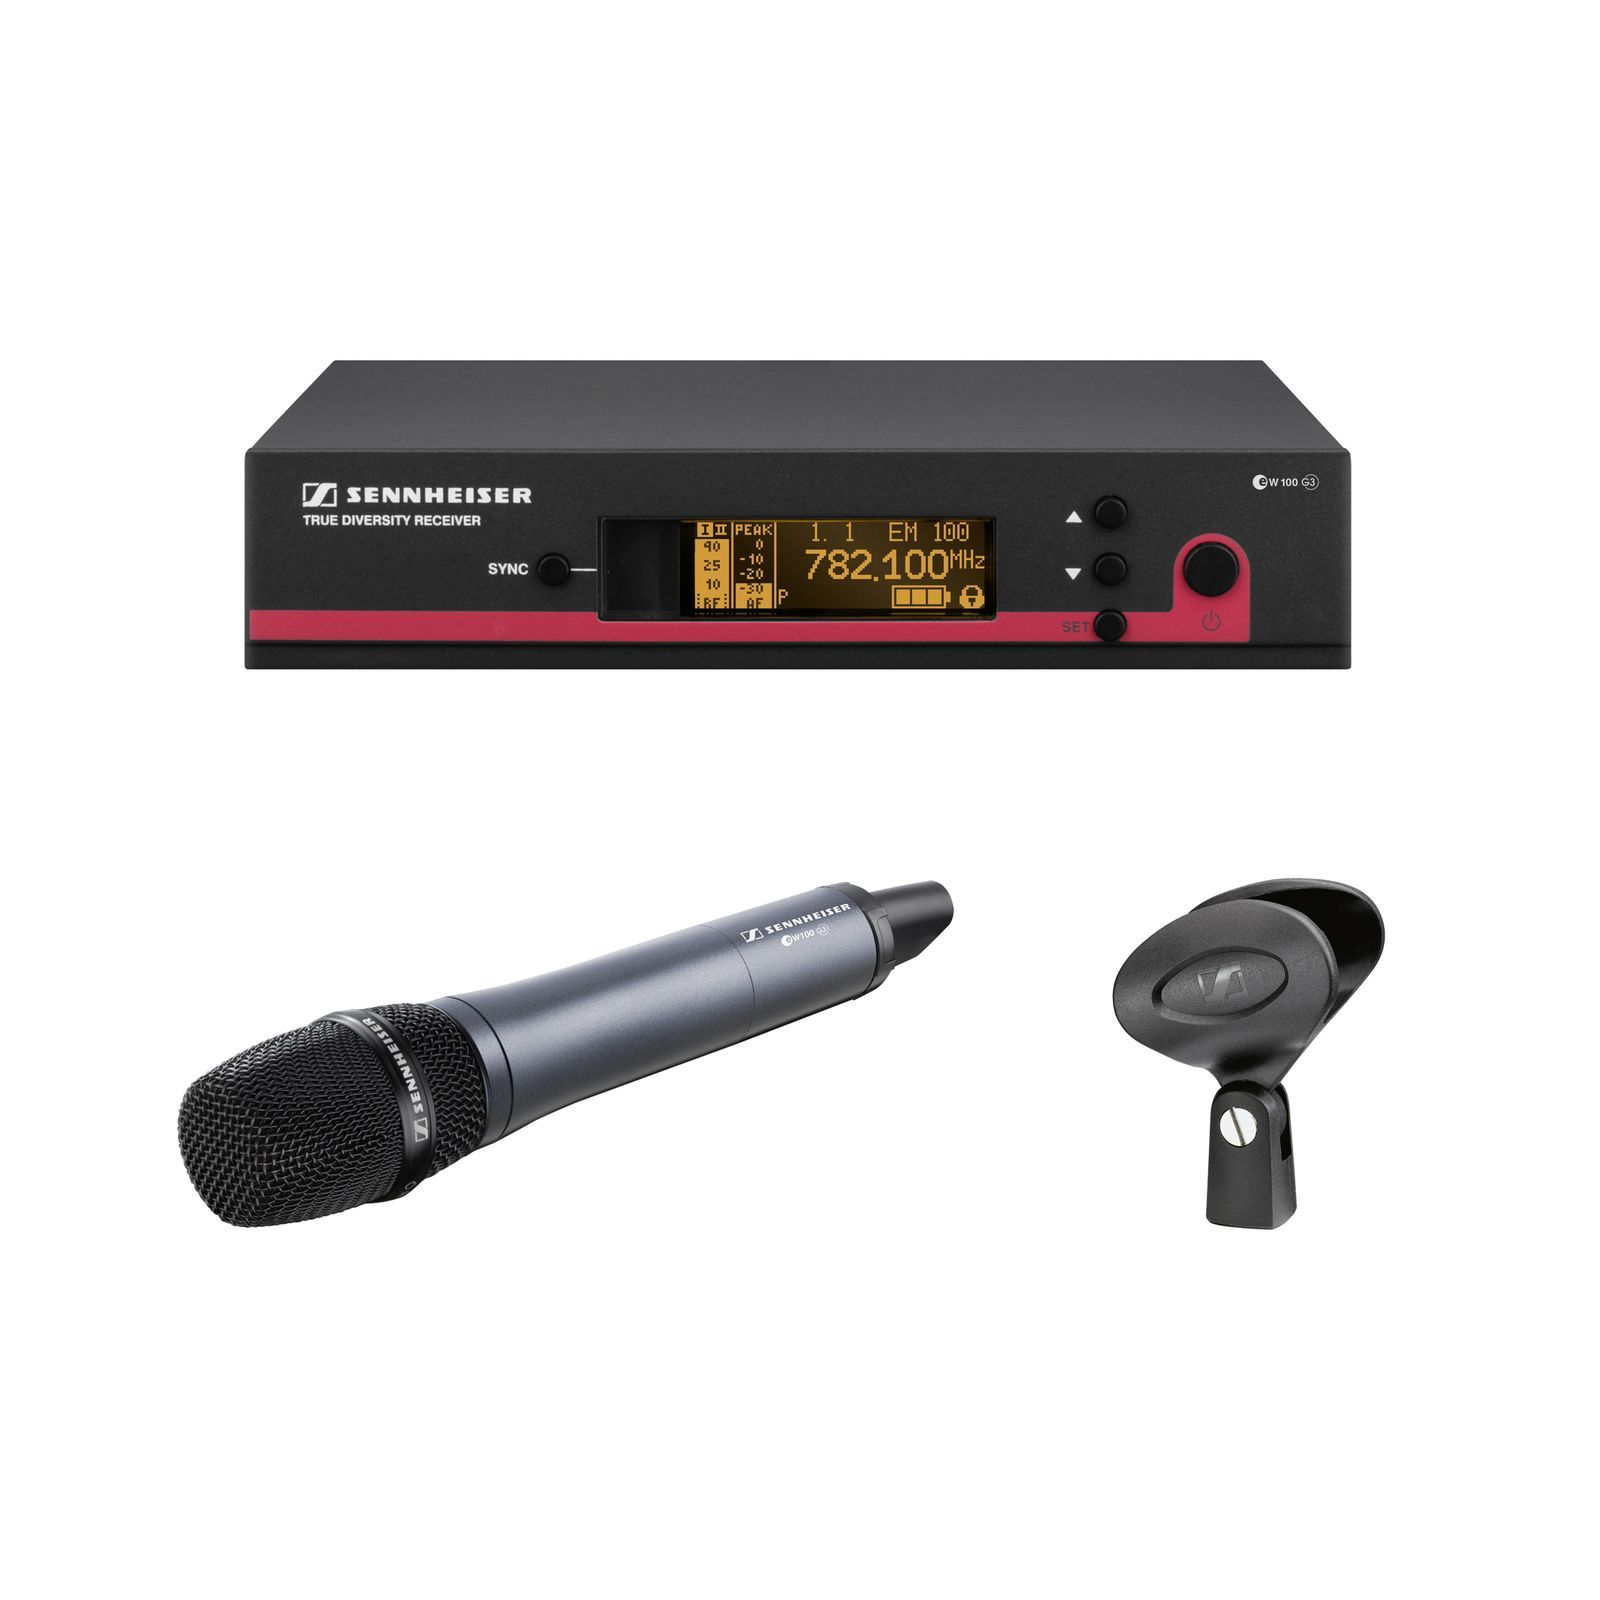 Sennheiser ew 145-GB G3 Vocal Set / 606 - 638 MHz Produktbild